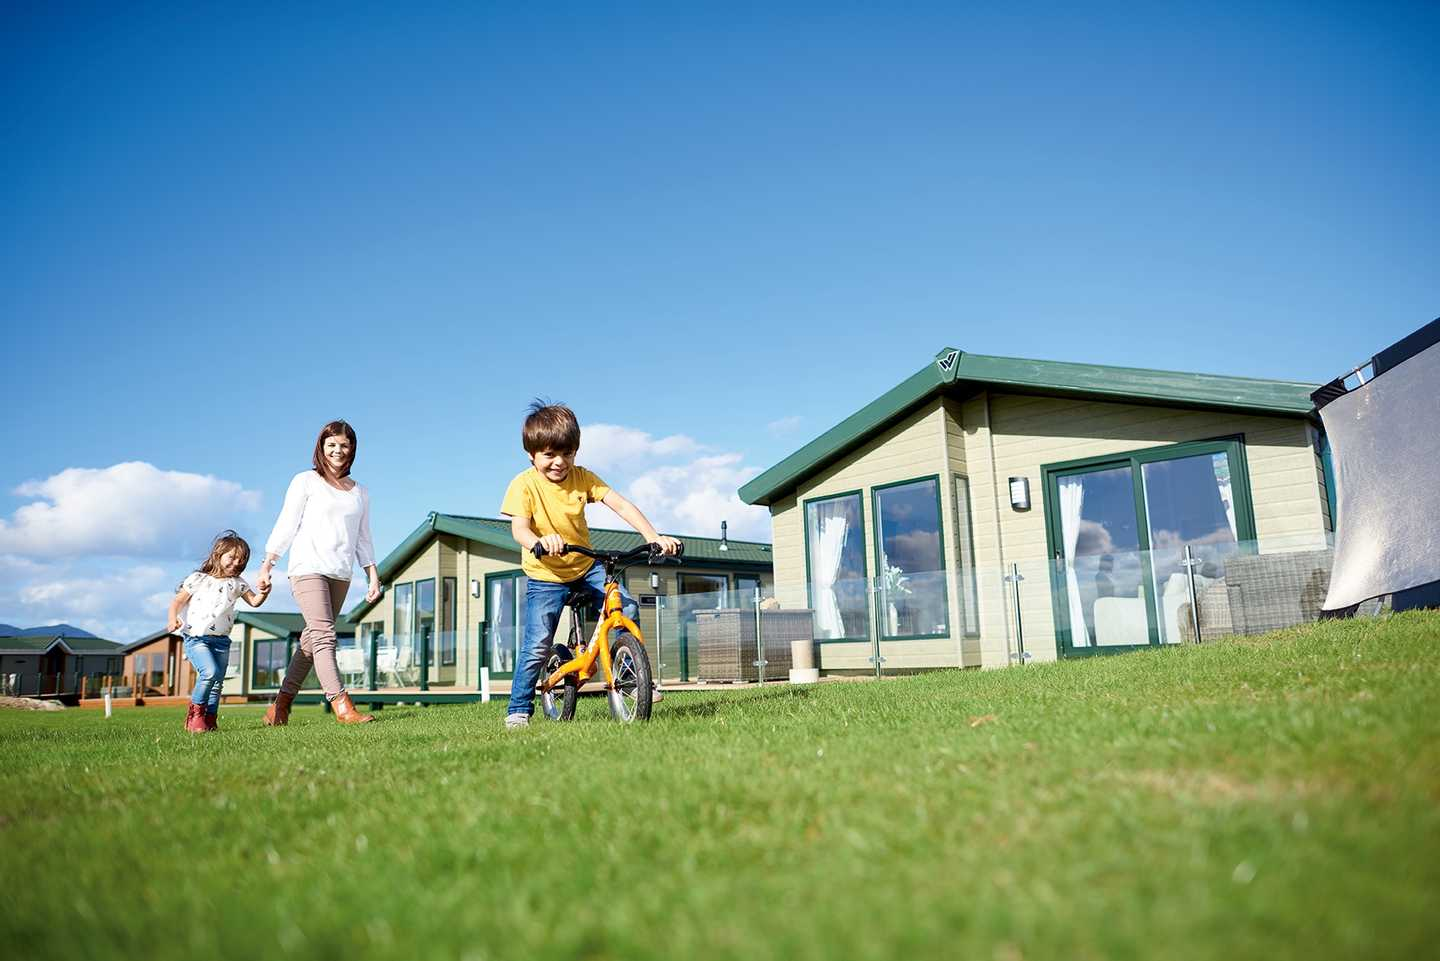 A family walking across the wide area of grass around our Golf Village area of Hafan y Môr Holiday Park with the young boy on his bike